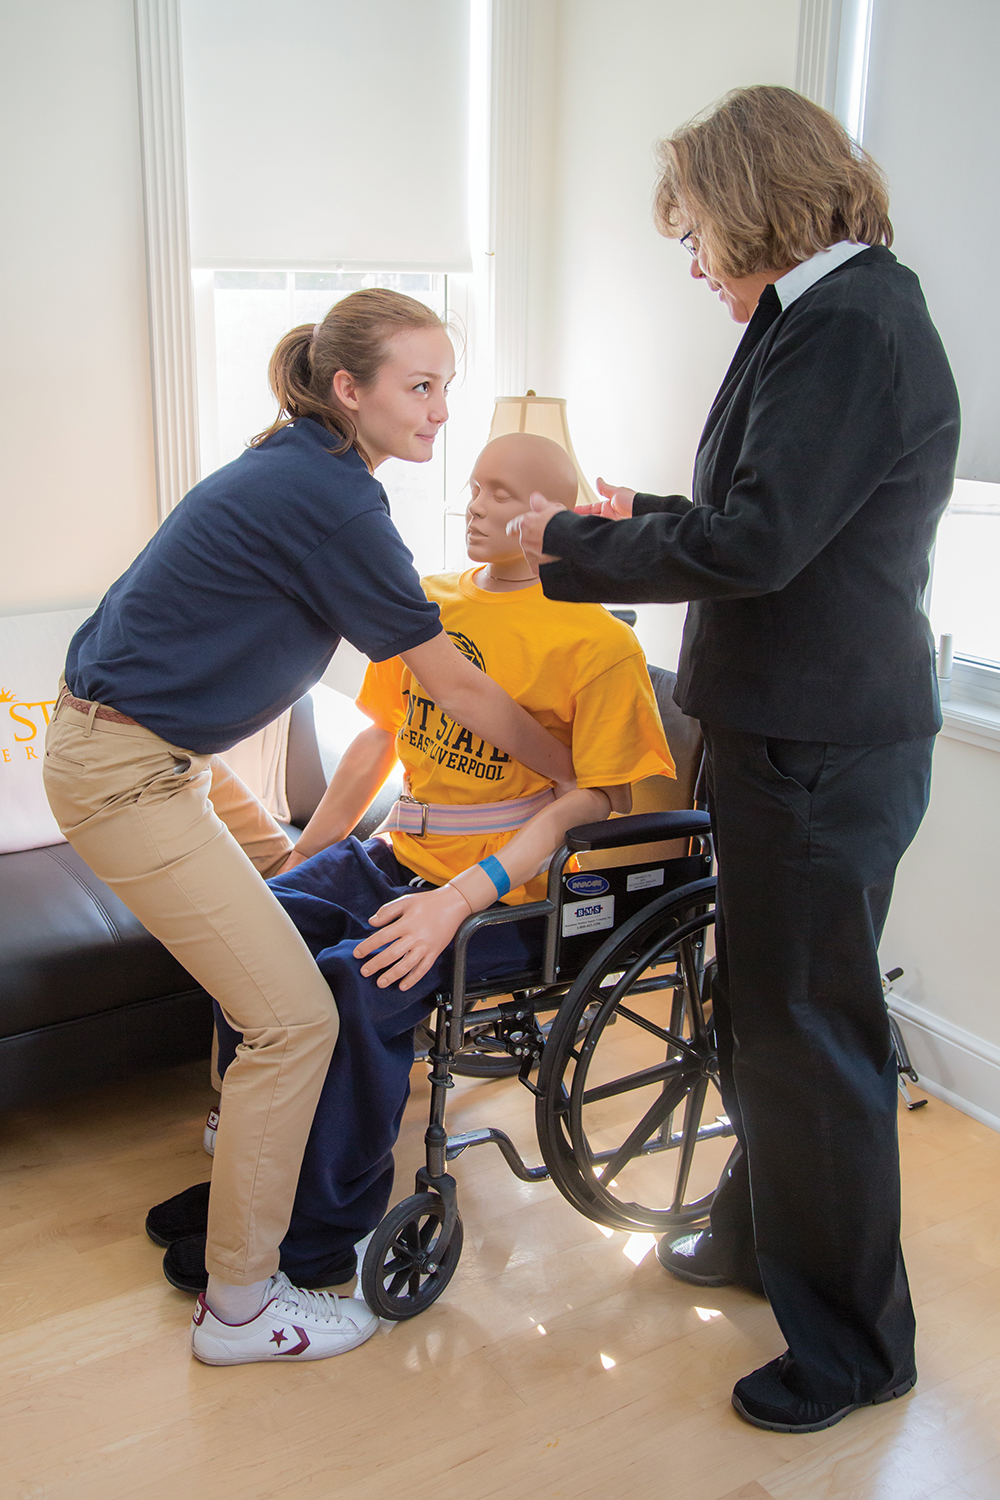 Associate lecturer Kathy Swoboda oversees a student practicing the transfer of a patient from a wheelchair to a couch.